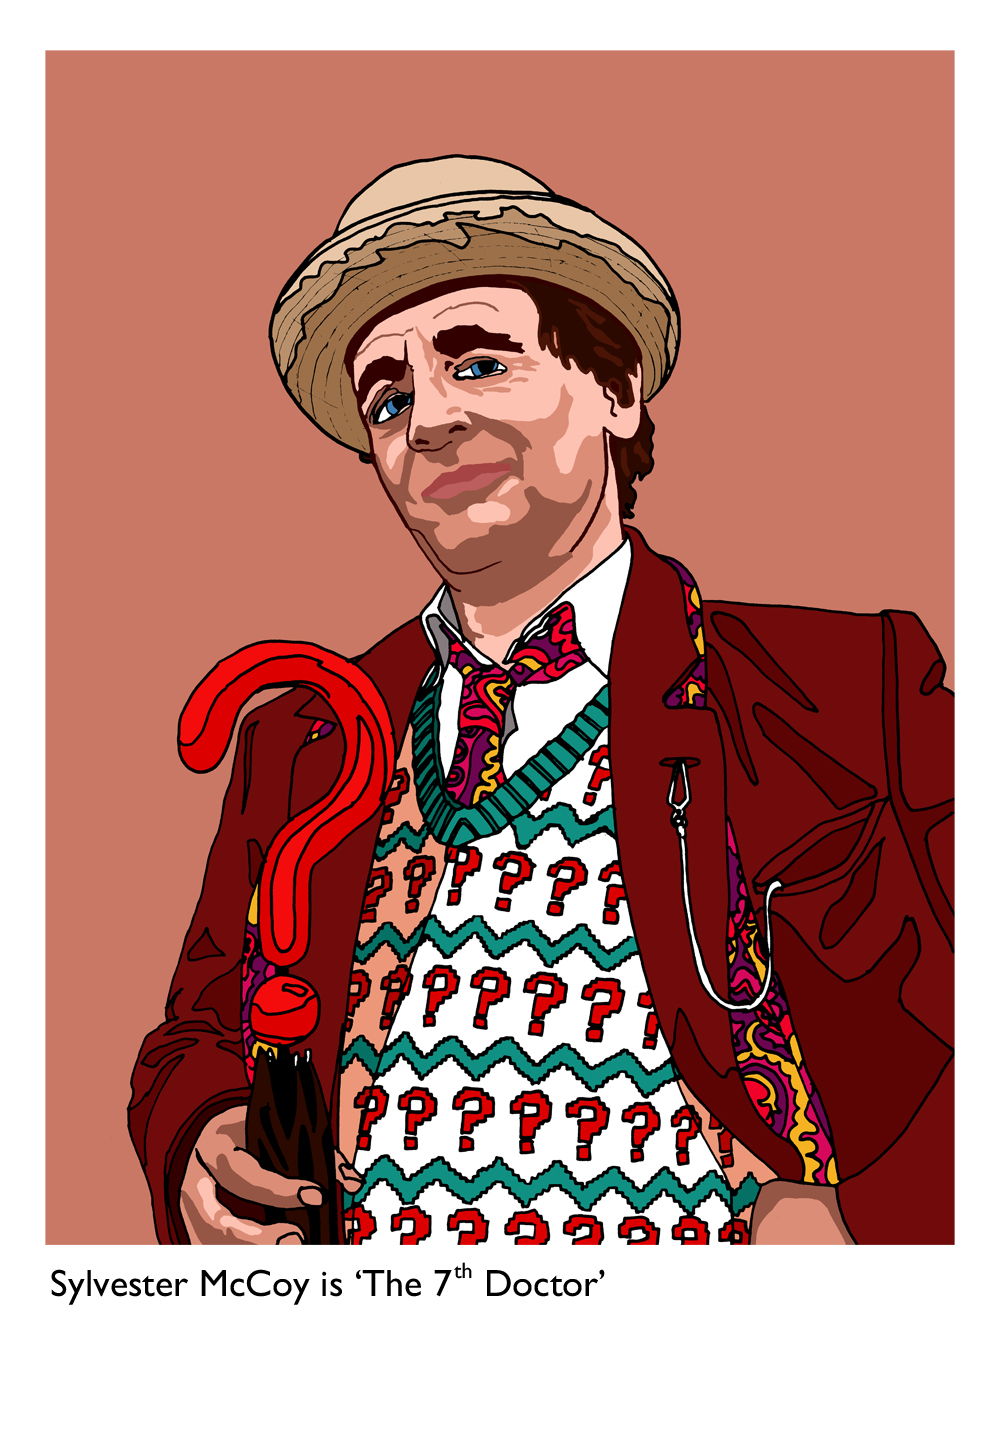 Sylvester McCoy is 'The 7th Doctor' - Limited edition print